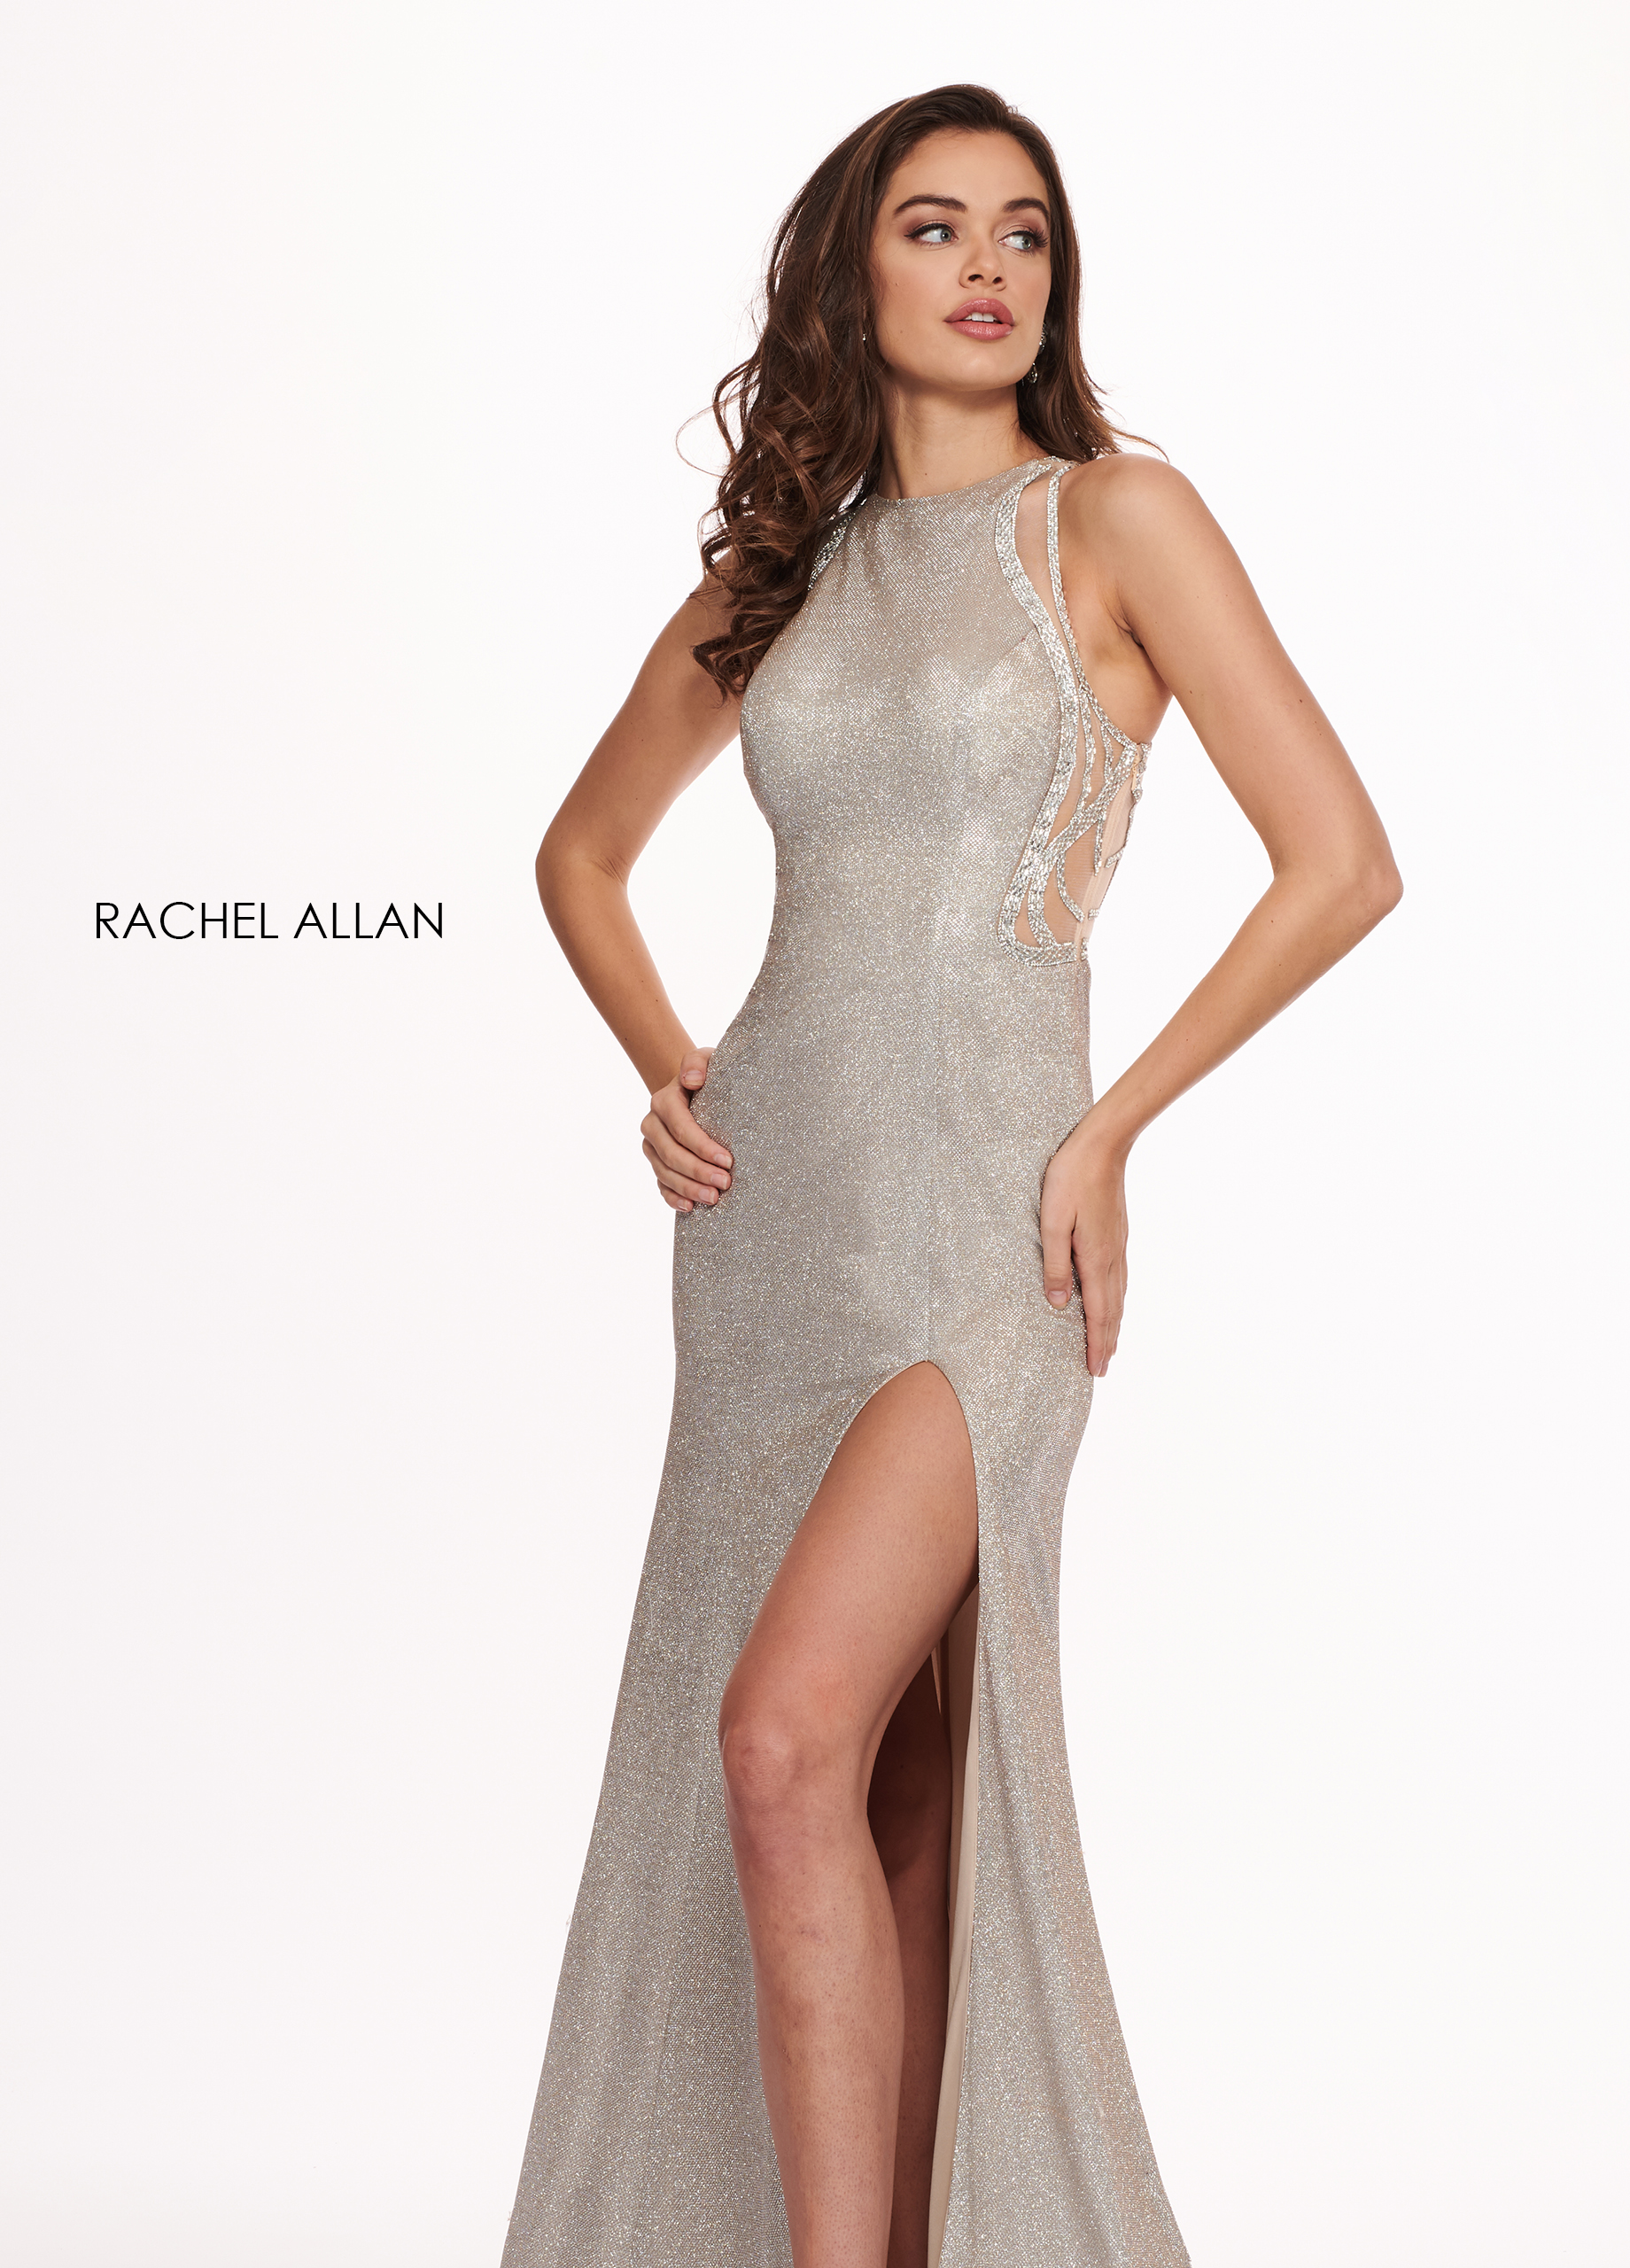 Scoop Neck Fit & Flare Prom Dresses in Silver/gunmetal Color